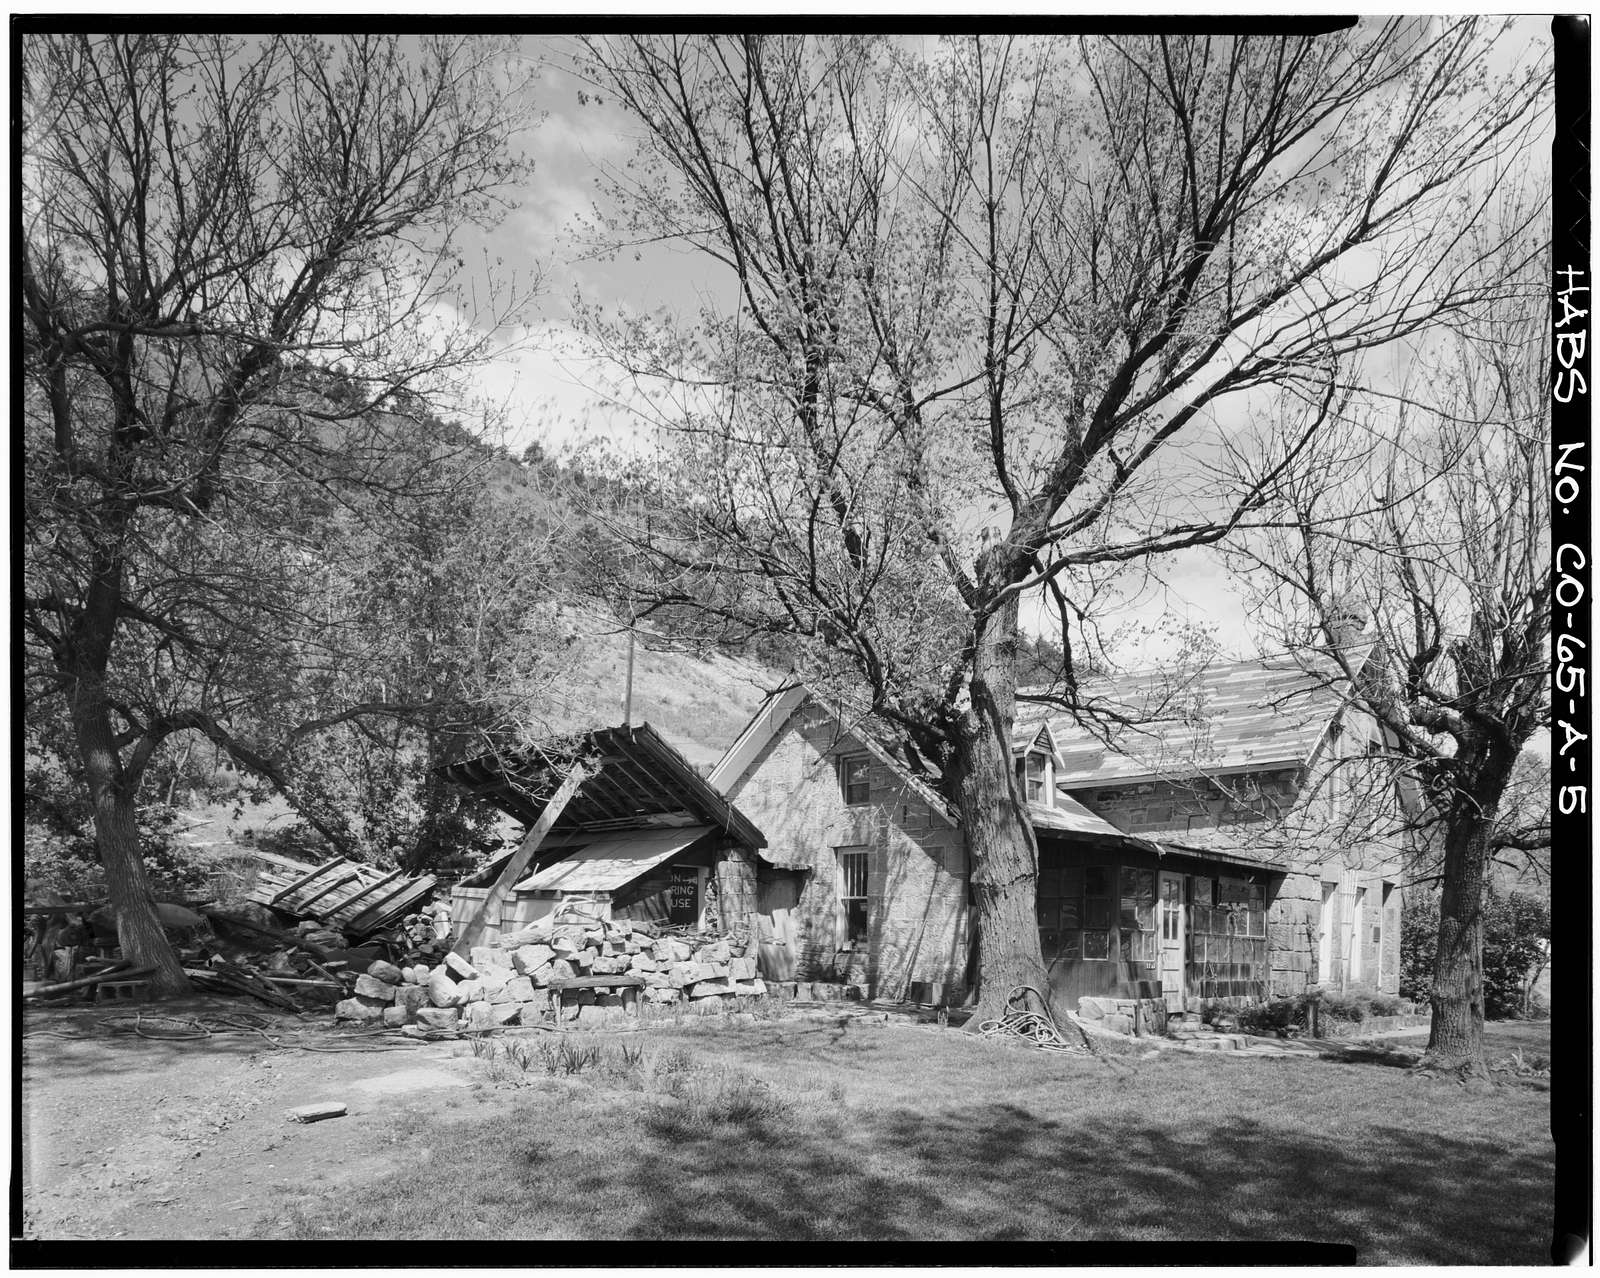 Rooney Ranch, Main House, Rooney Road & West Alamdea Parkway, Morrison, Jefferson County, CO